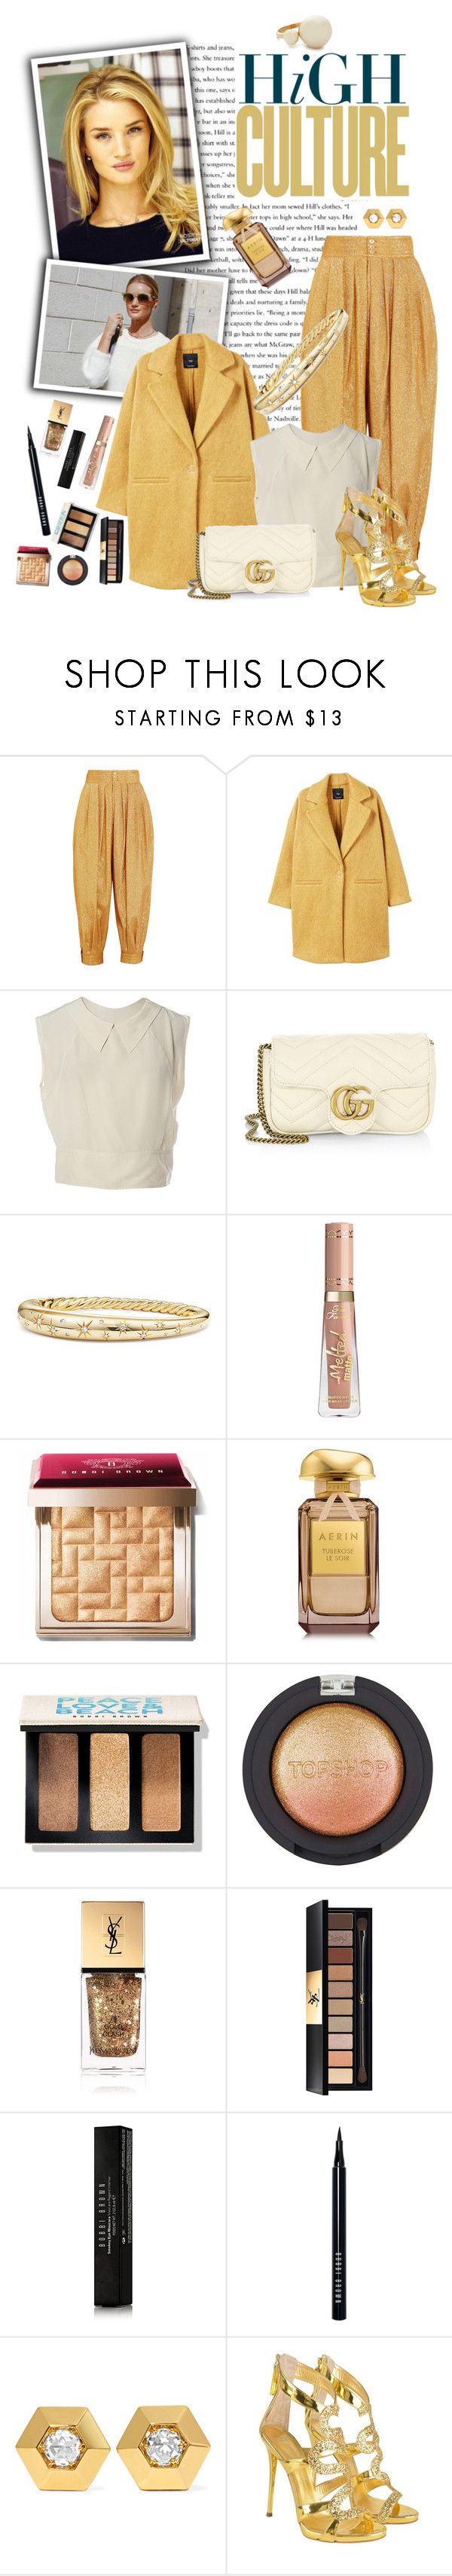 """Golden Rose"" by espritducoeur ❤ liked on Polyvore featuring Gucci, Ultimate, Whiteley, MANGO, Chanel, David Yurman, Bobbi Brown Cosmetics, AERIN, Topshop and Yves Saint Laurent"